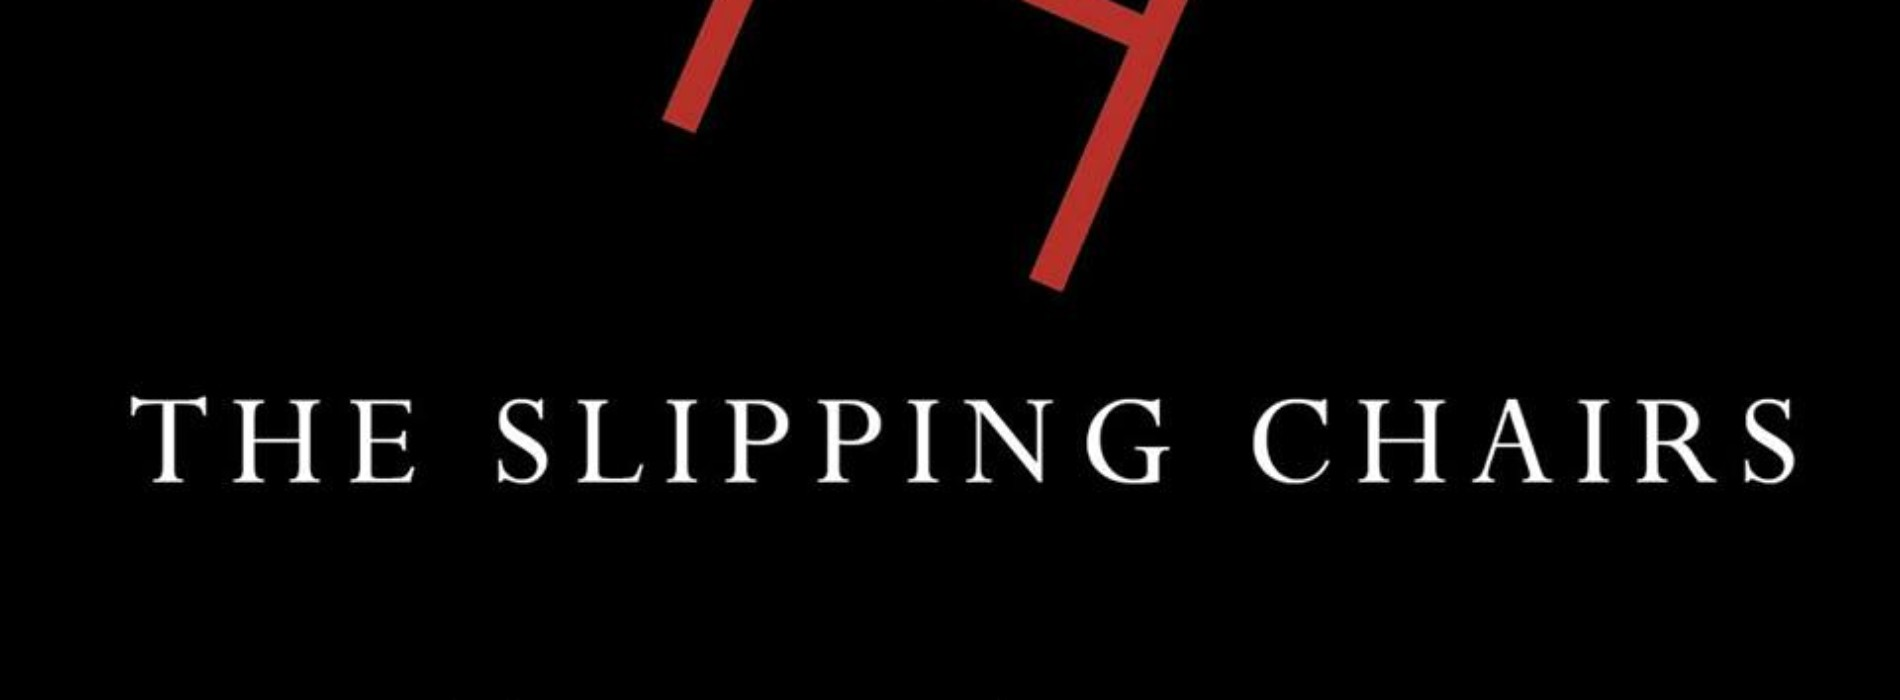 The Slipping Chars Announce Their Debut Album Launch + Concert